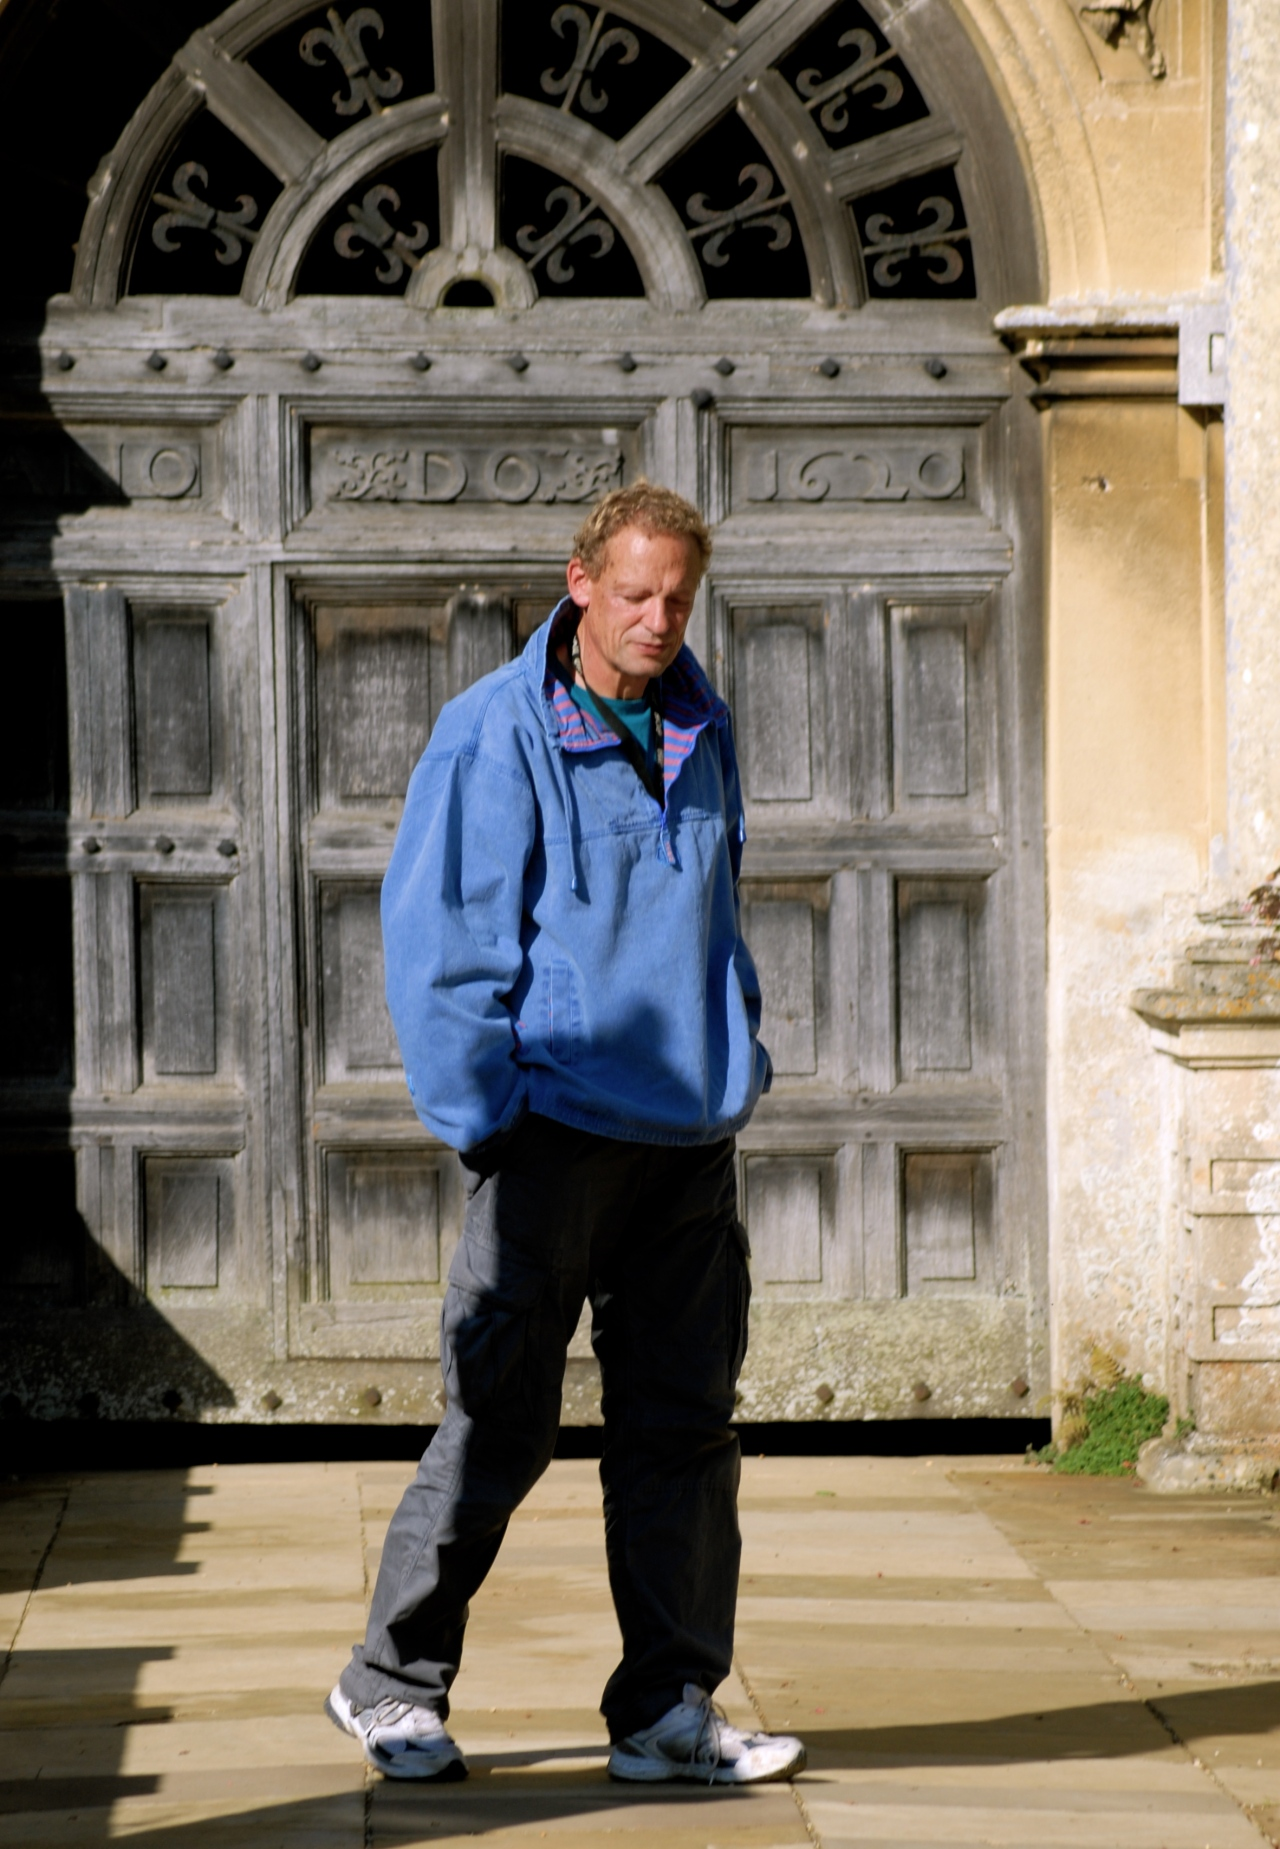 Klausbernd Vollmar, Blickling Hall, Norfolk, Photo: Hanne Siebers